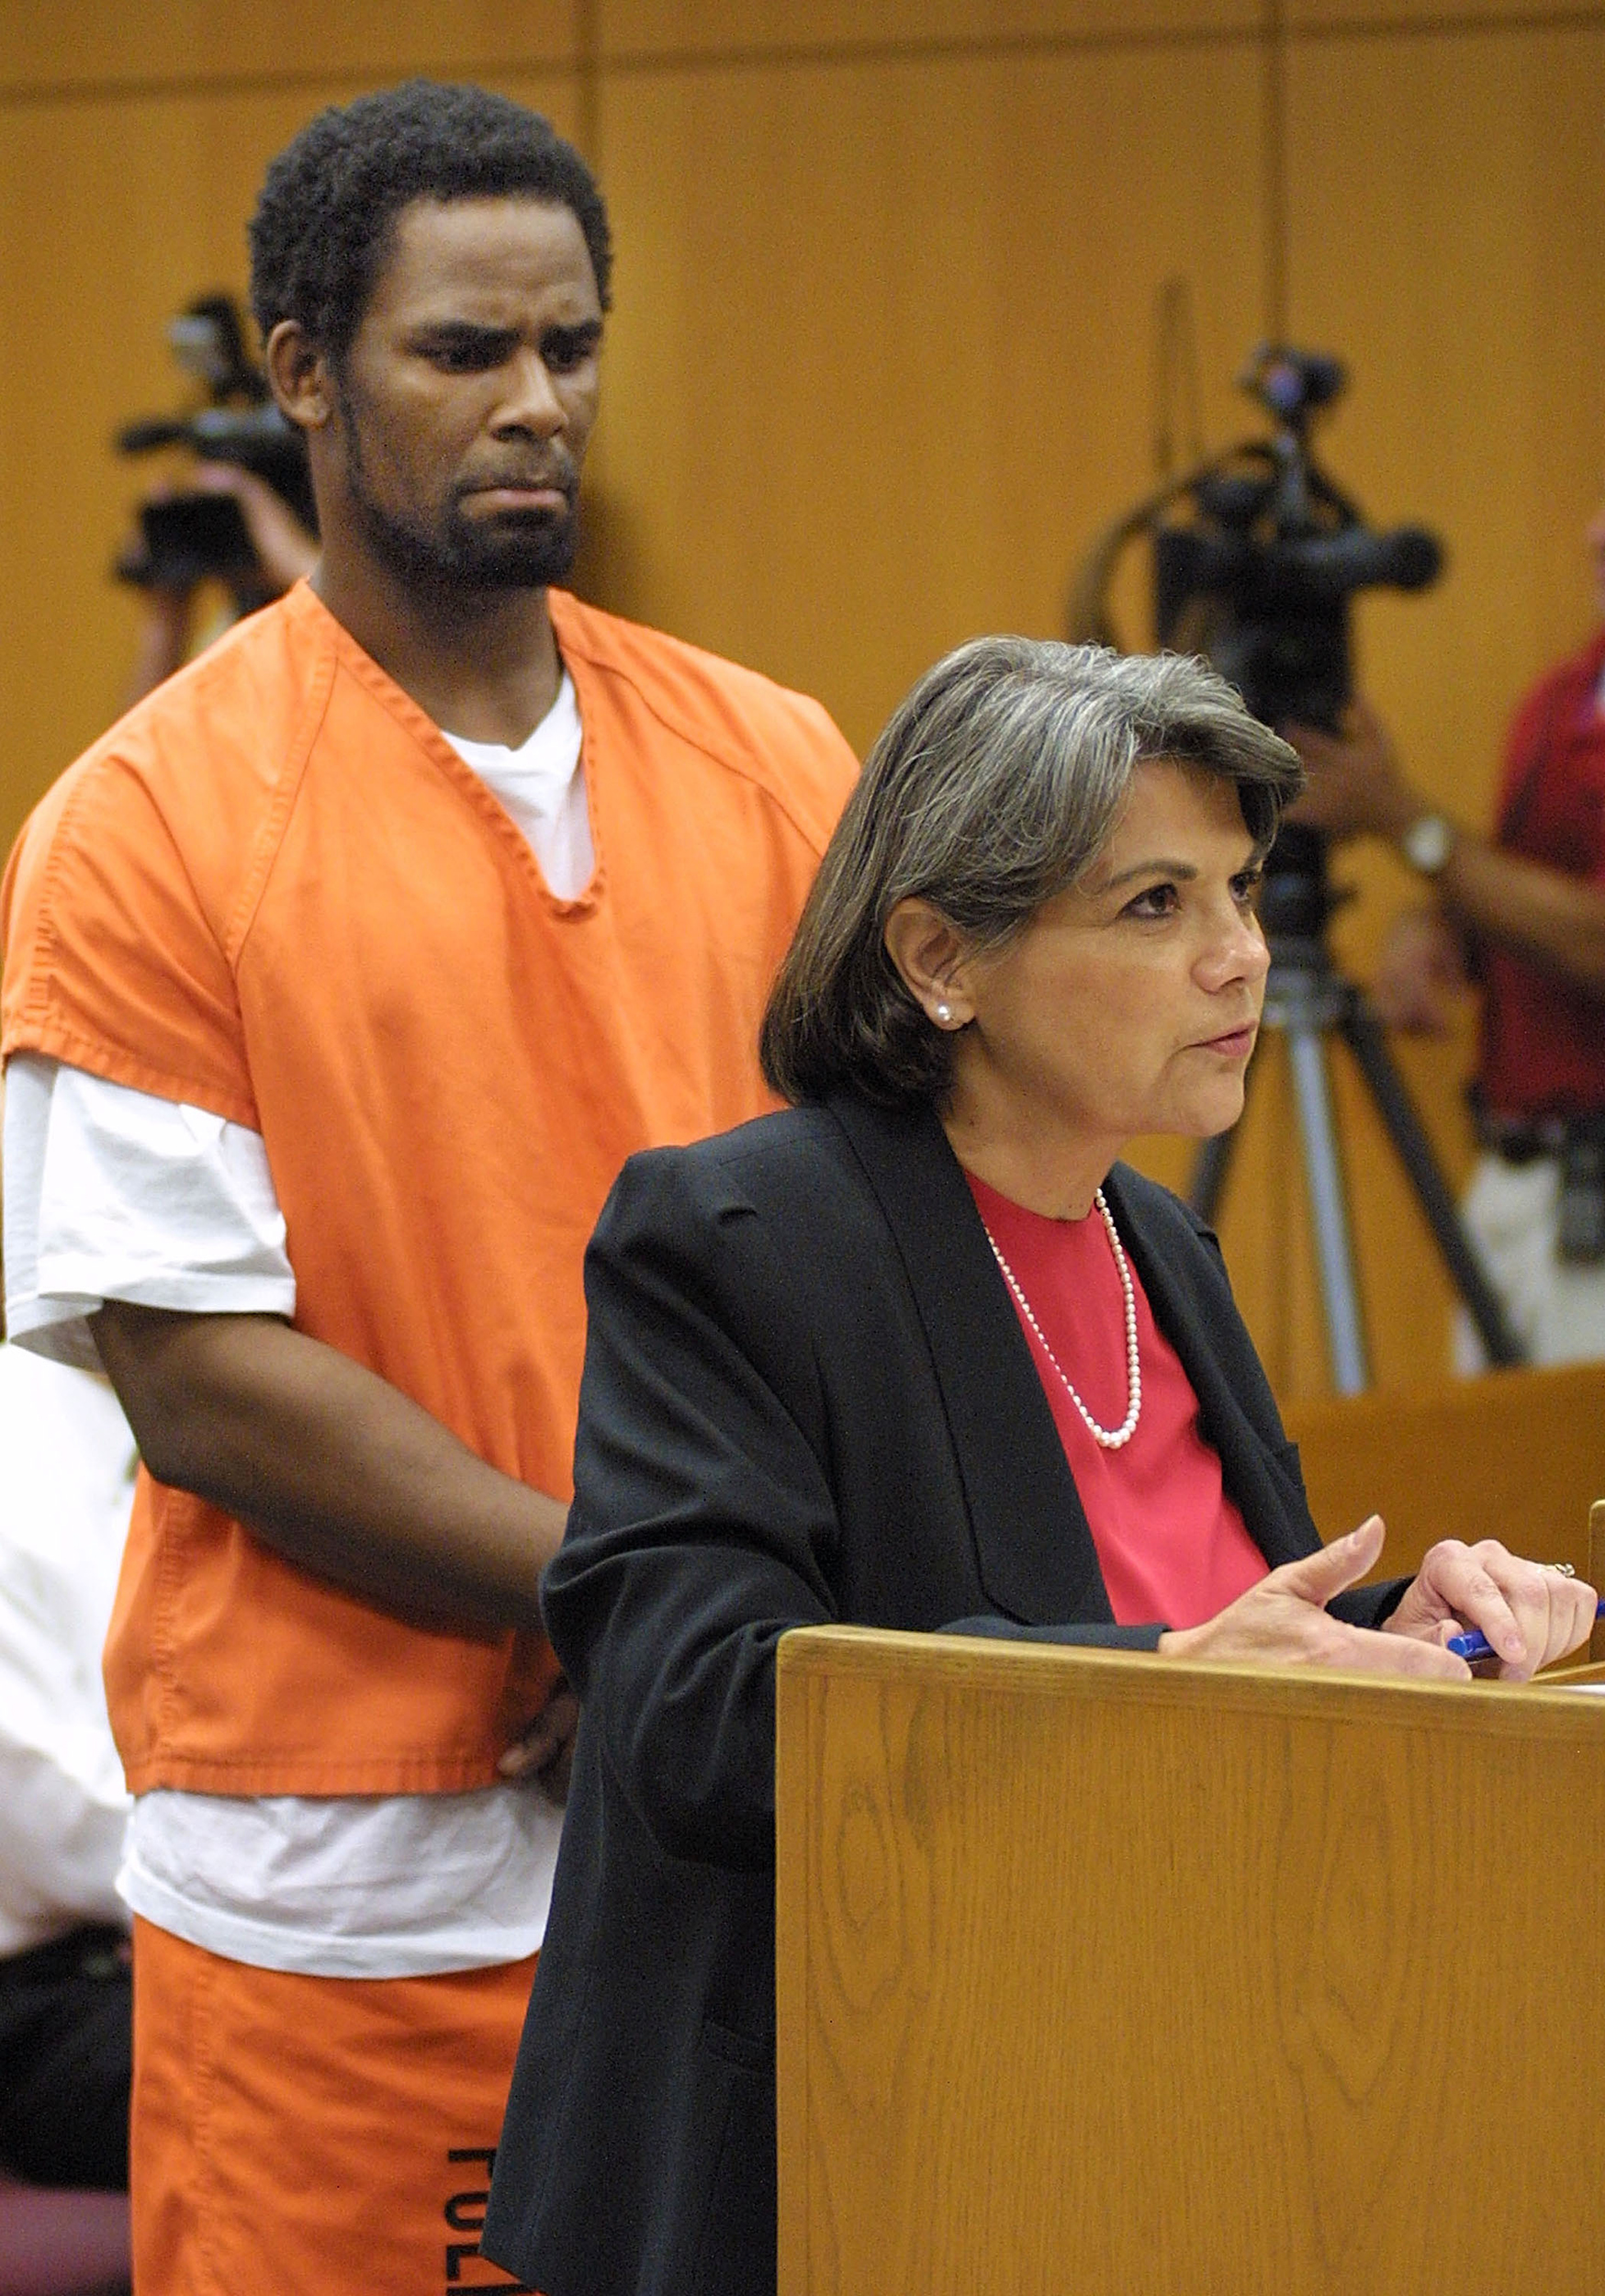 Image: R. Kelly Appears in Court